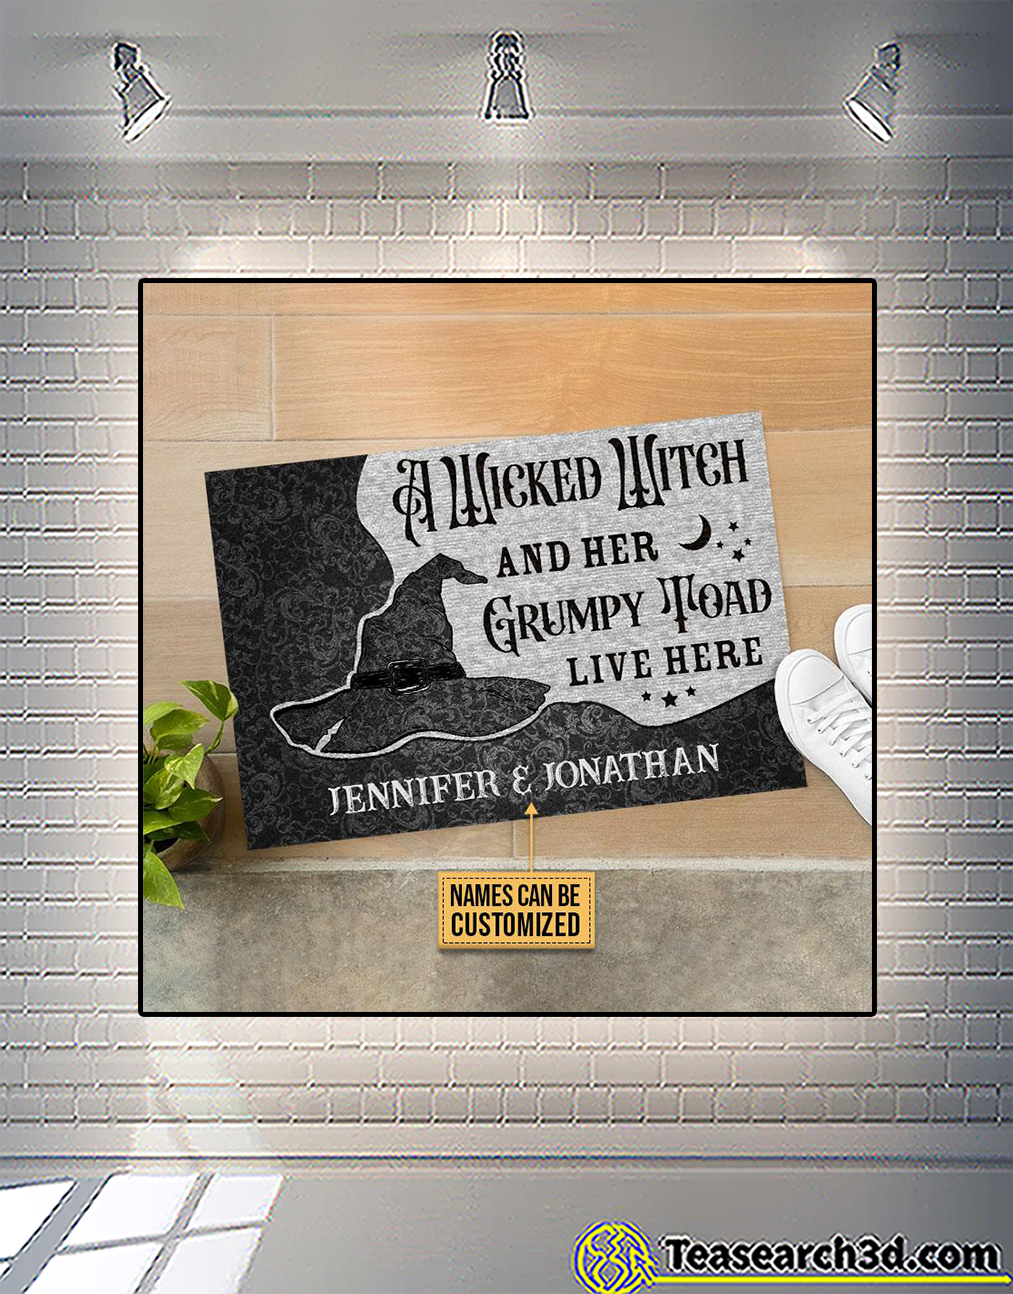 Personalized custom name a wicked witch and her grumpy toad live here doormat 1